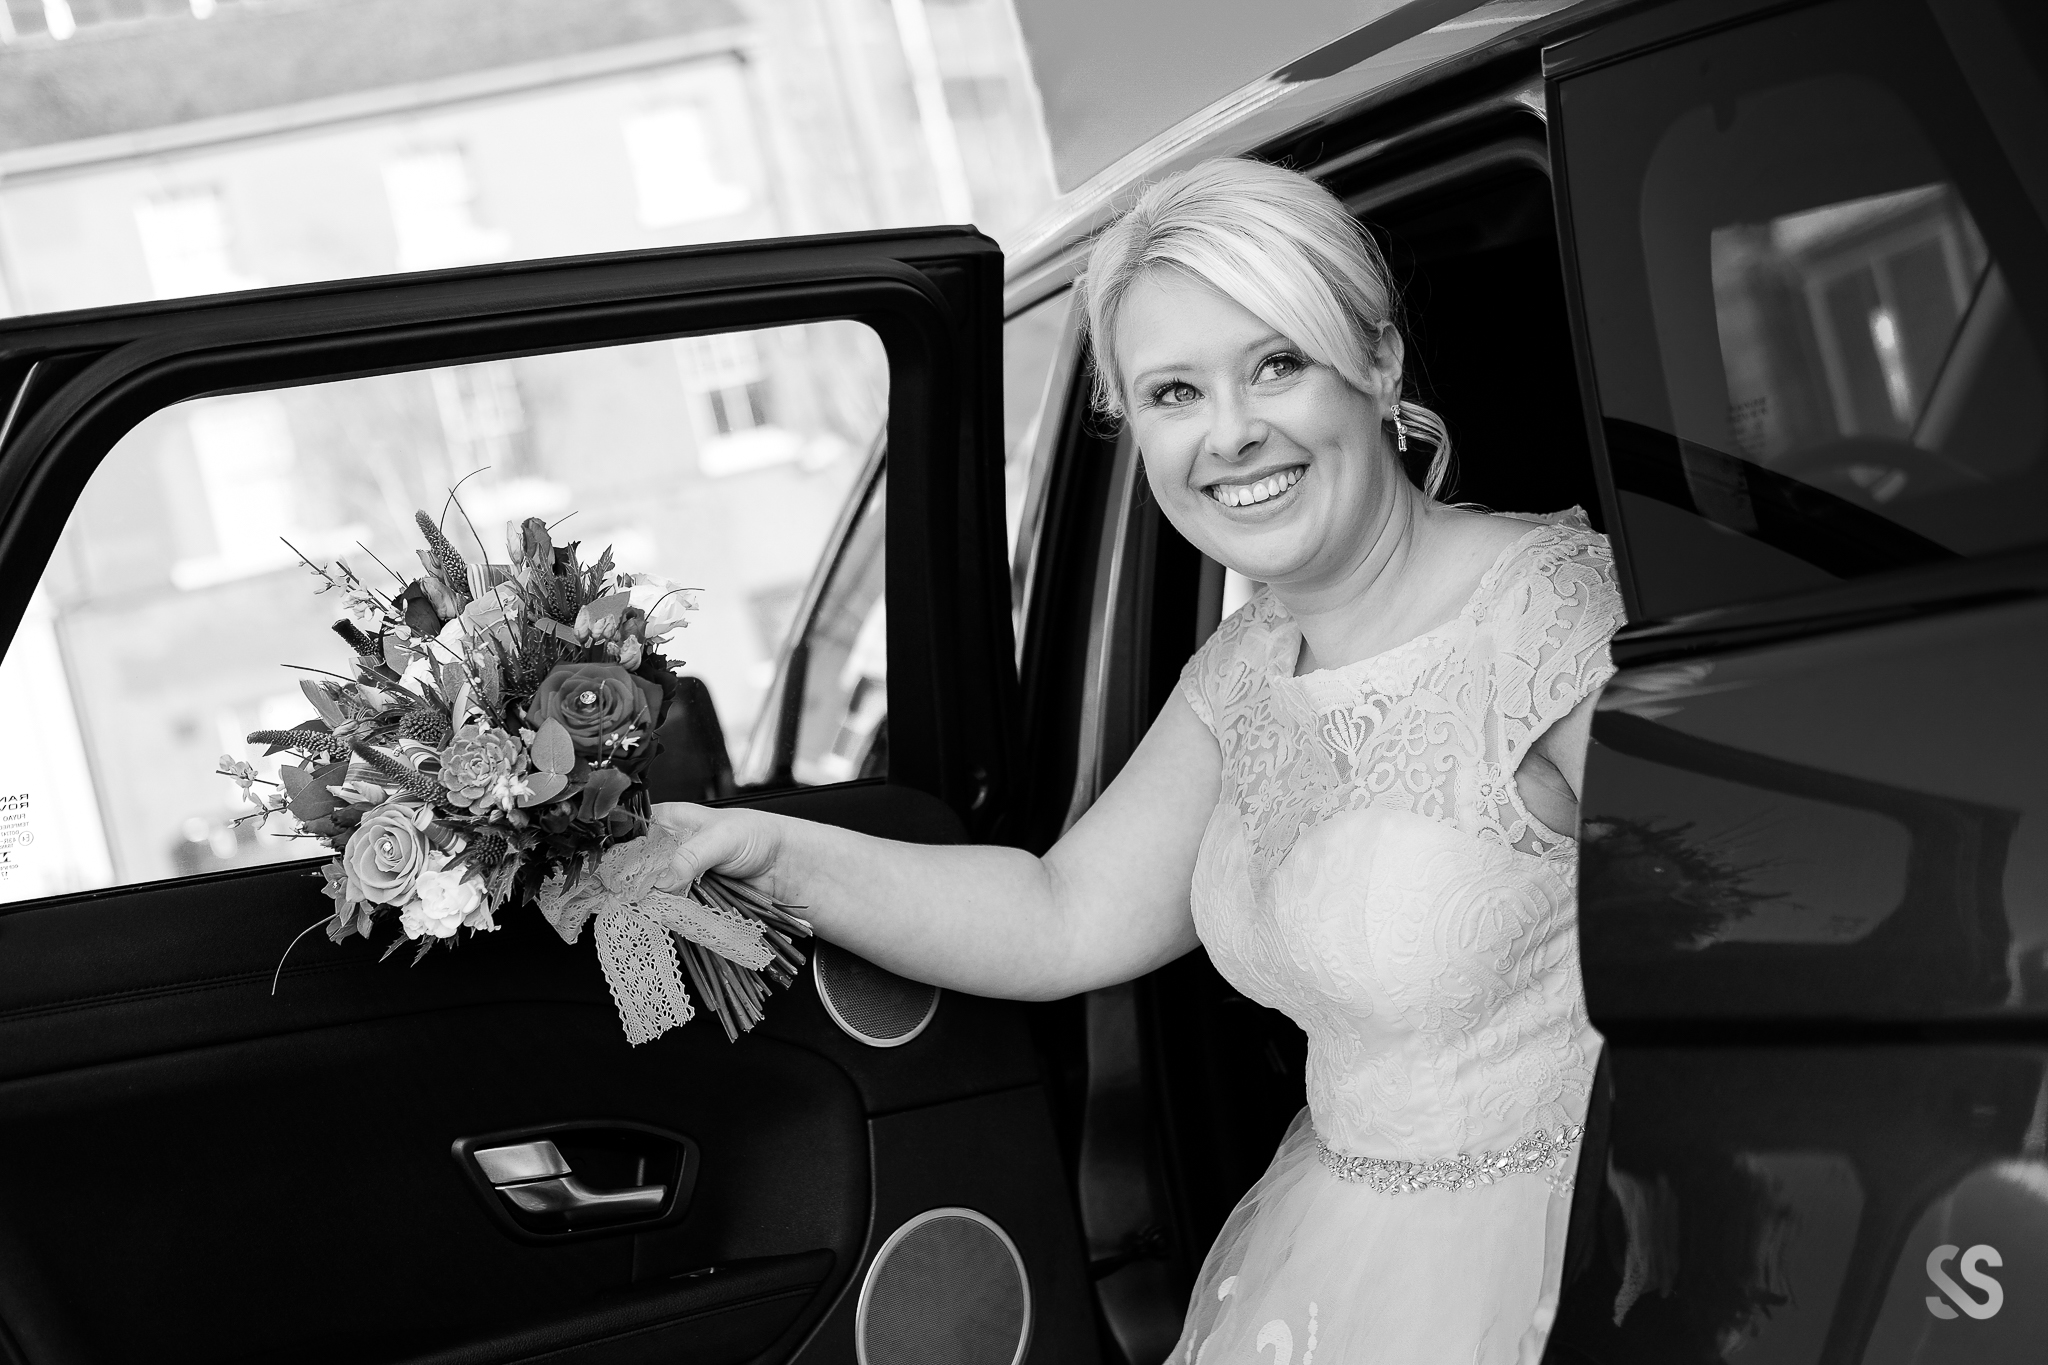 scott wedding photographer stoke 8.jpg